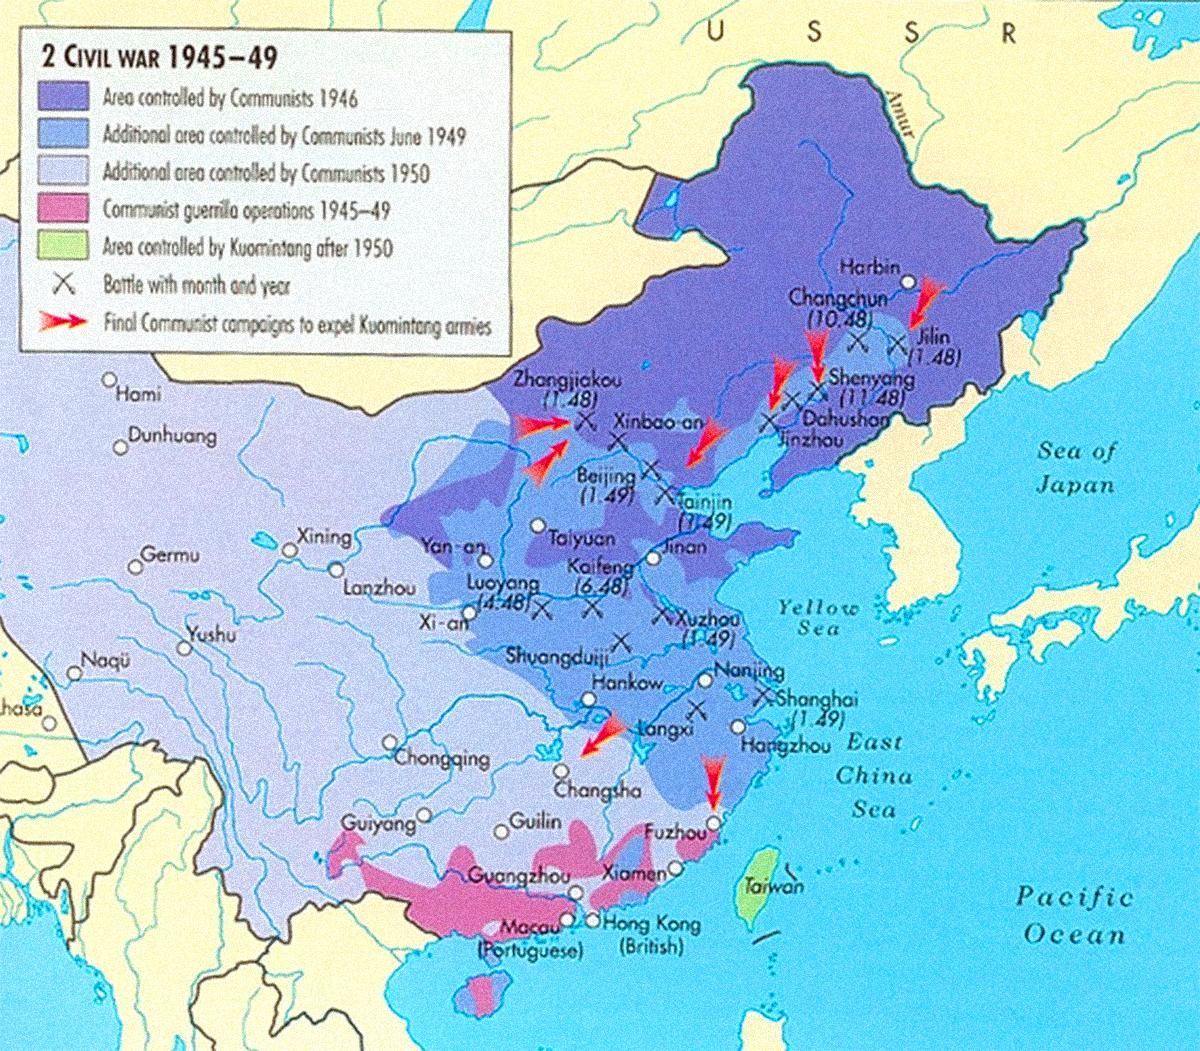 1946 1949 Map Of The Second Phase Of The Chinese Civil War